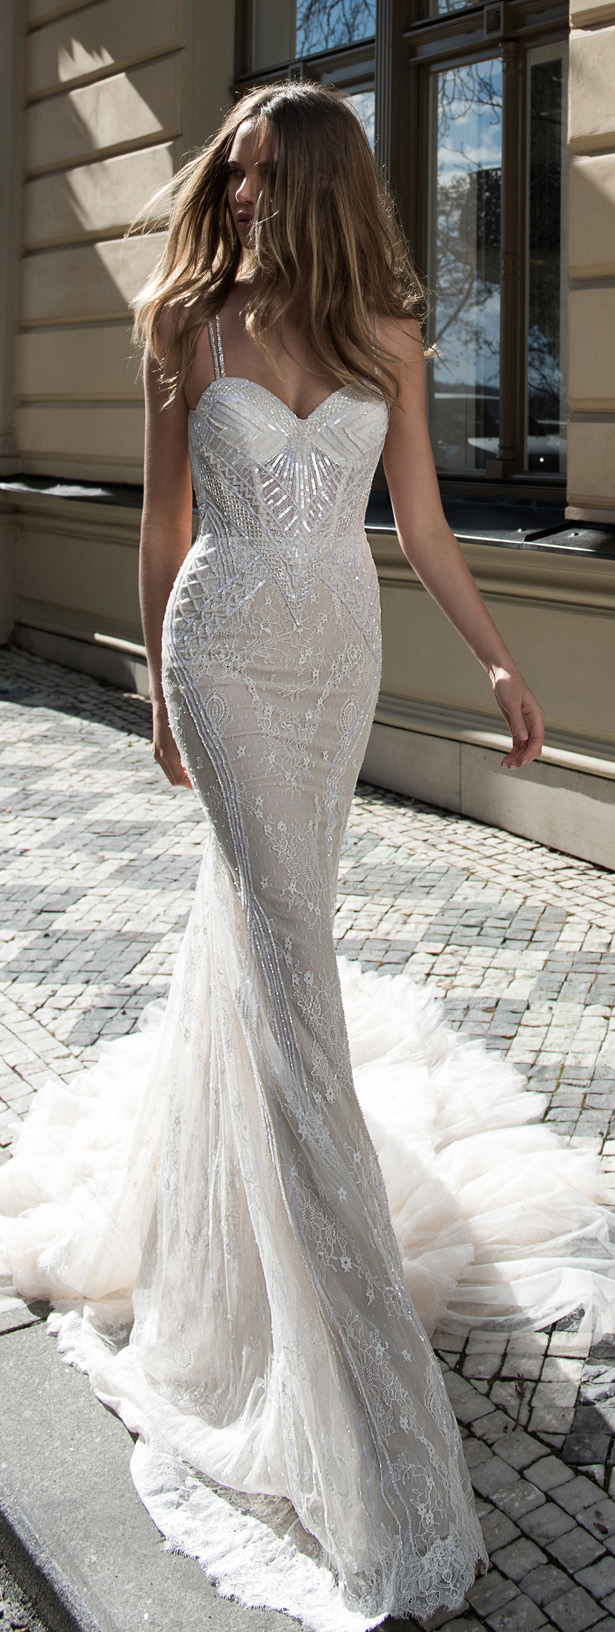 Wedding Dress by Berta Bridal Fall 2015